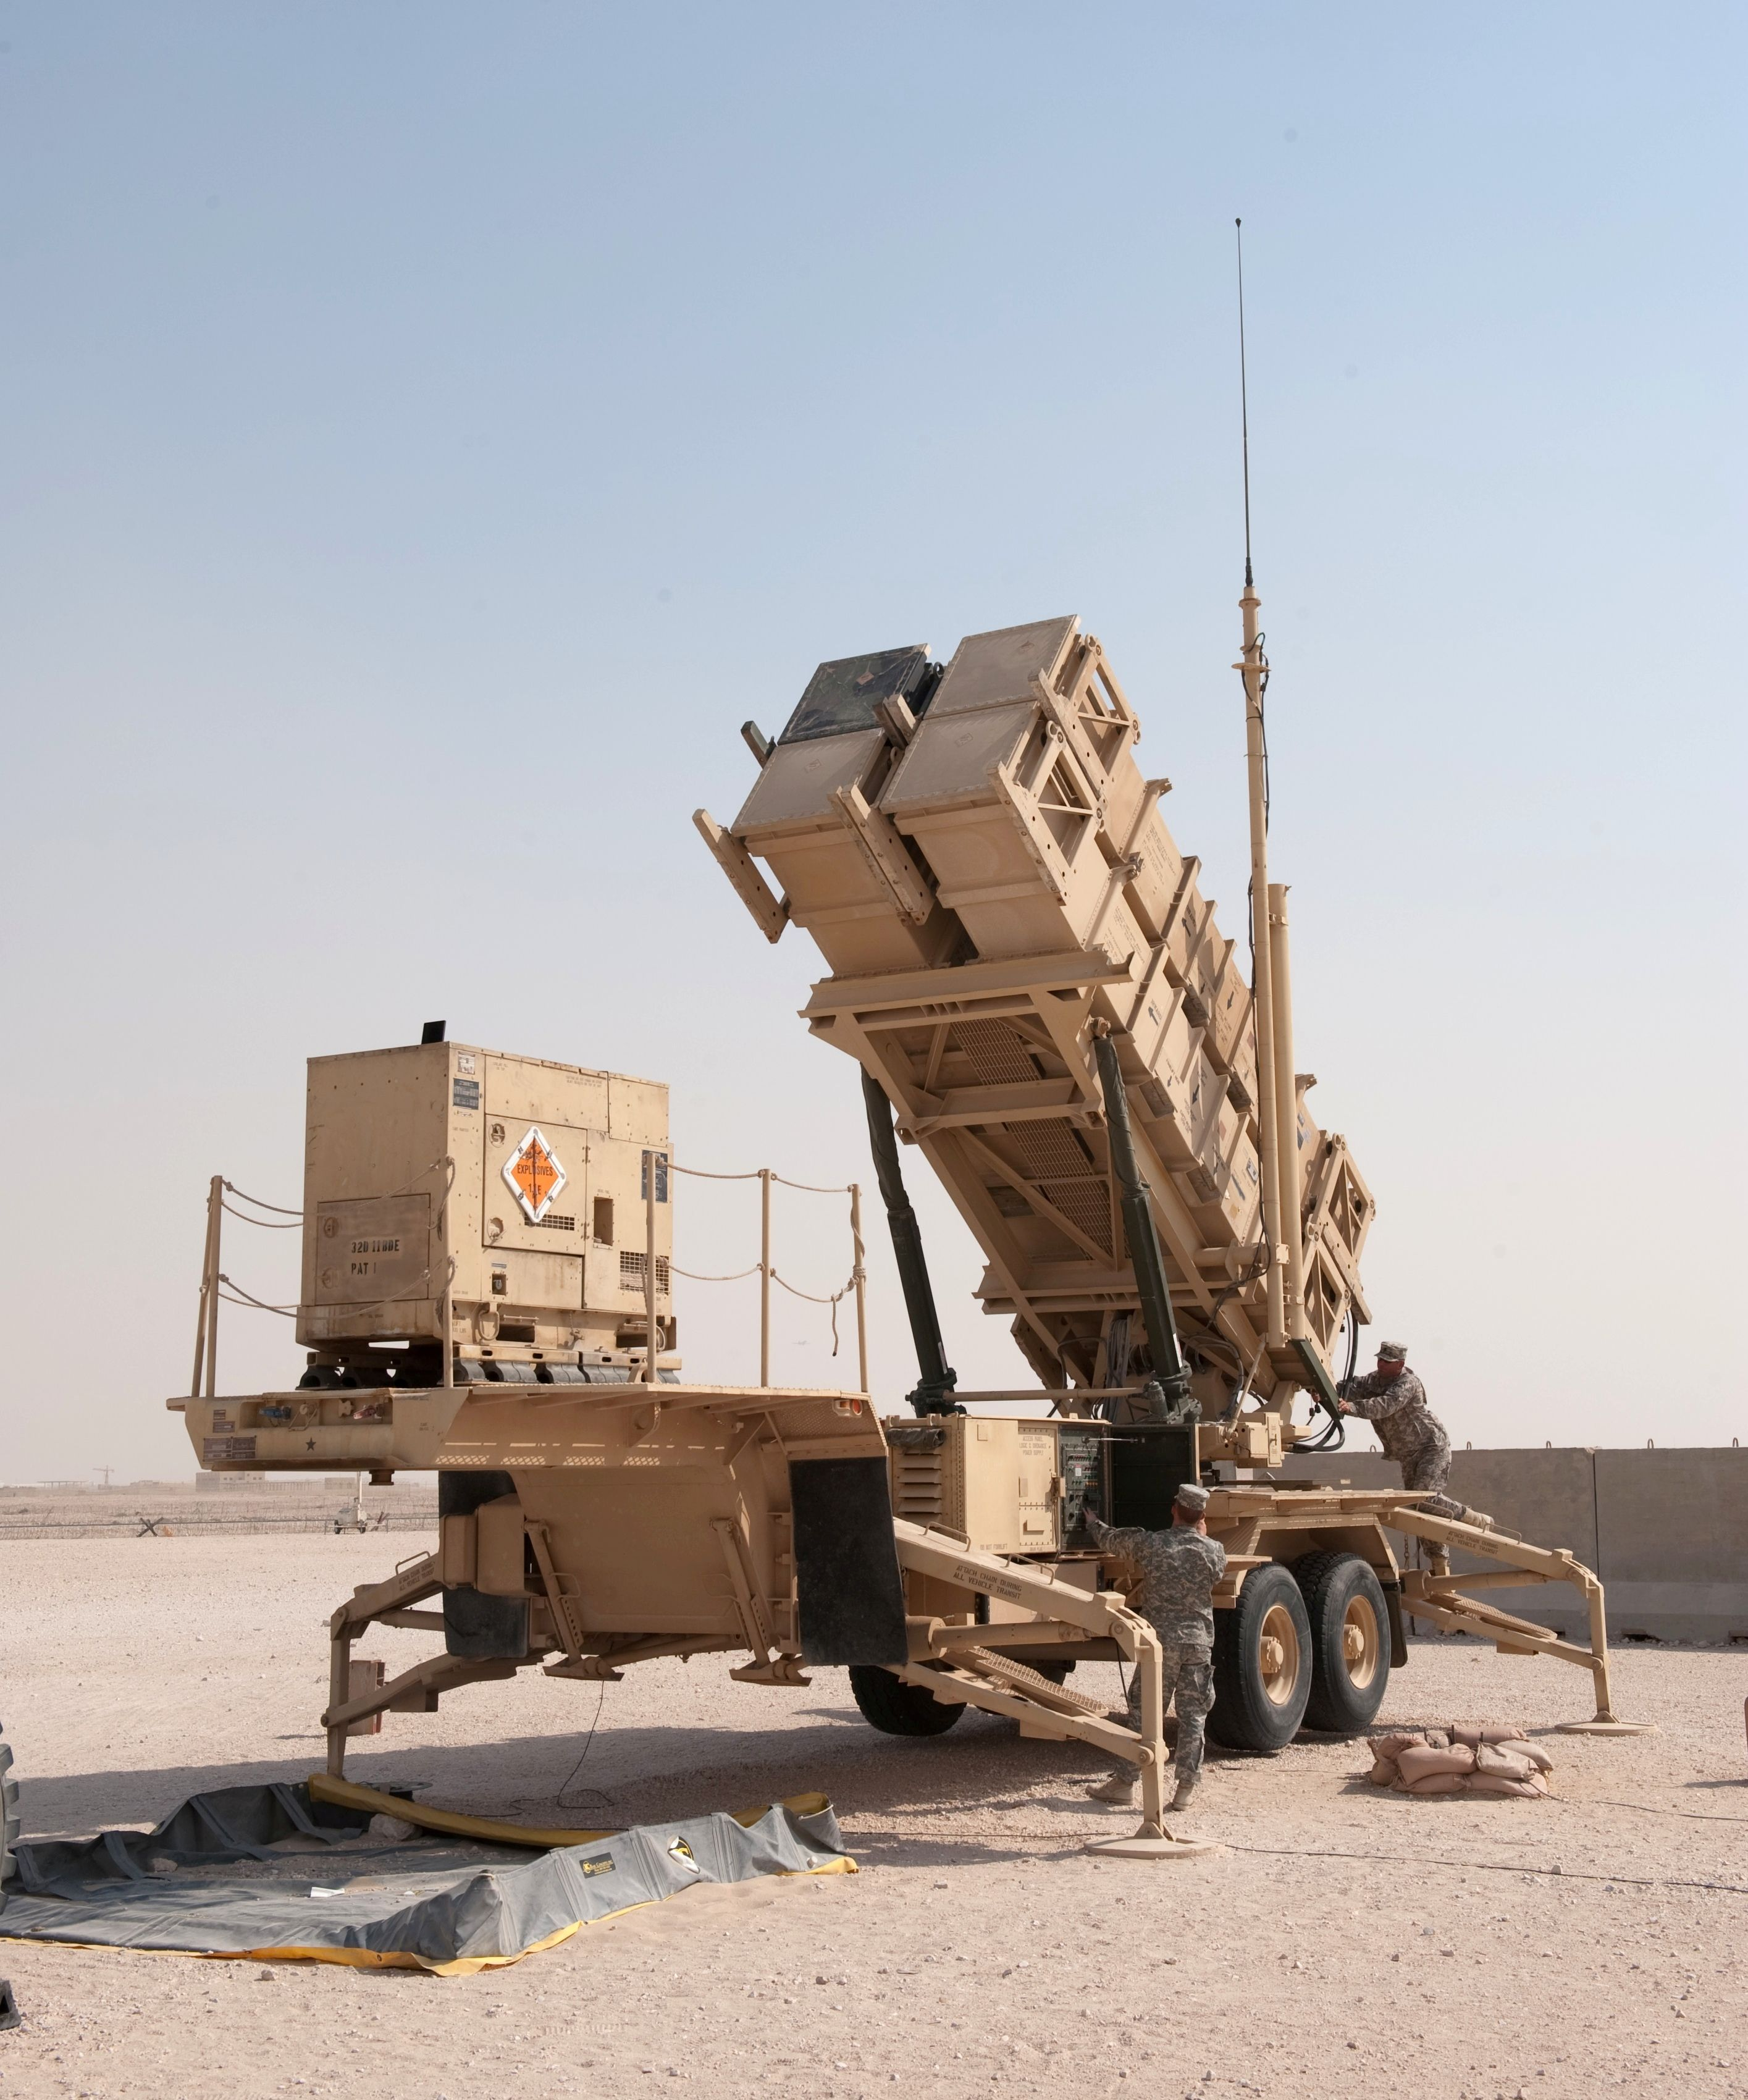 S 300 missile systems vs patriot - Us Army Soldiers Power Up A Patriot Missile System Canvas Art Stocktrek Images X